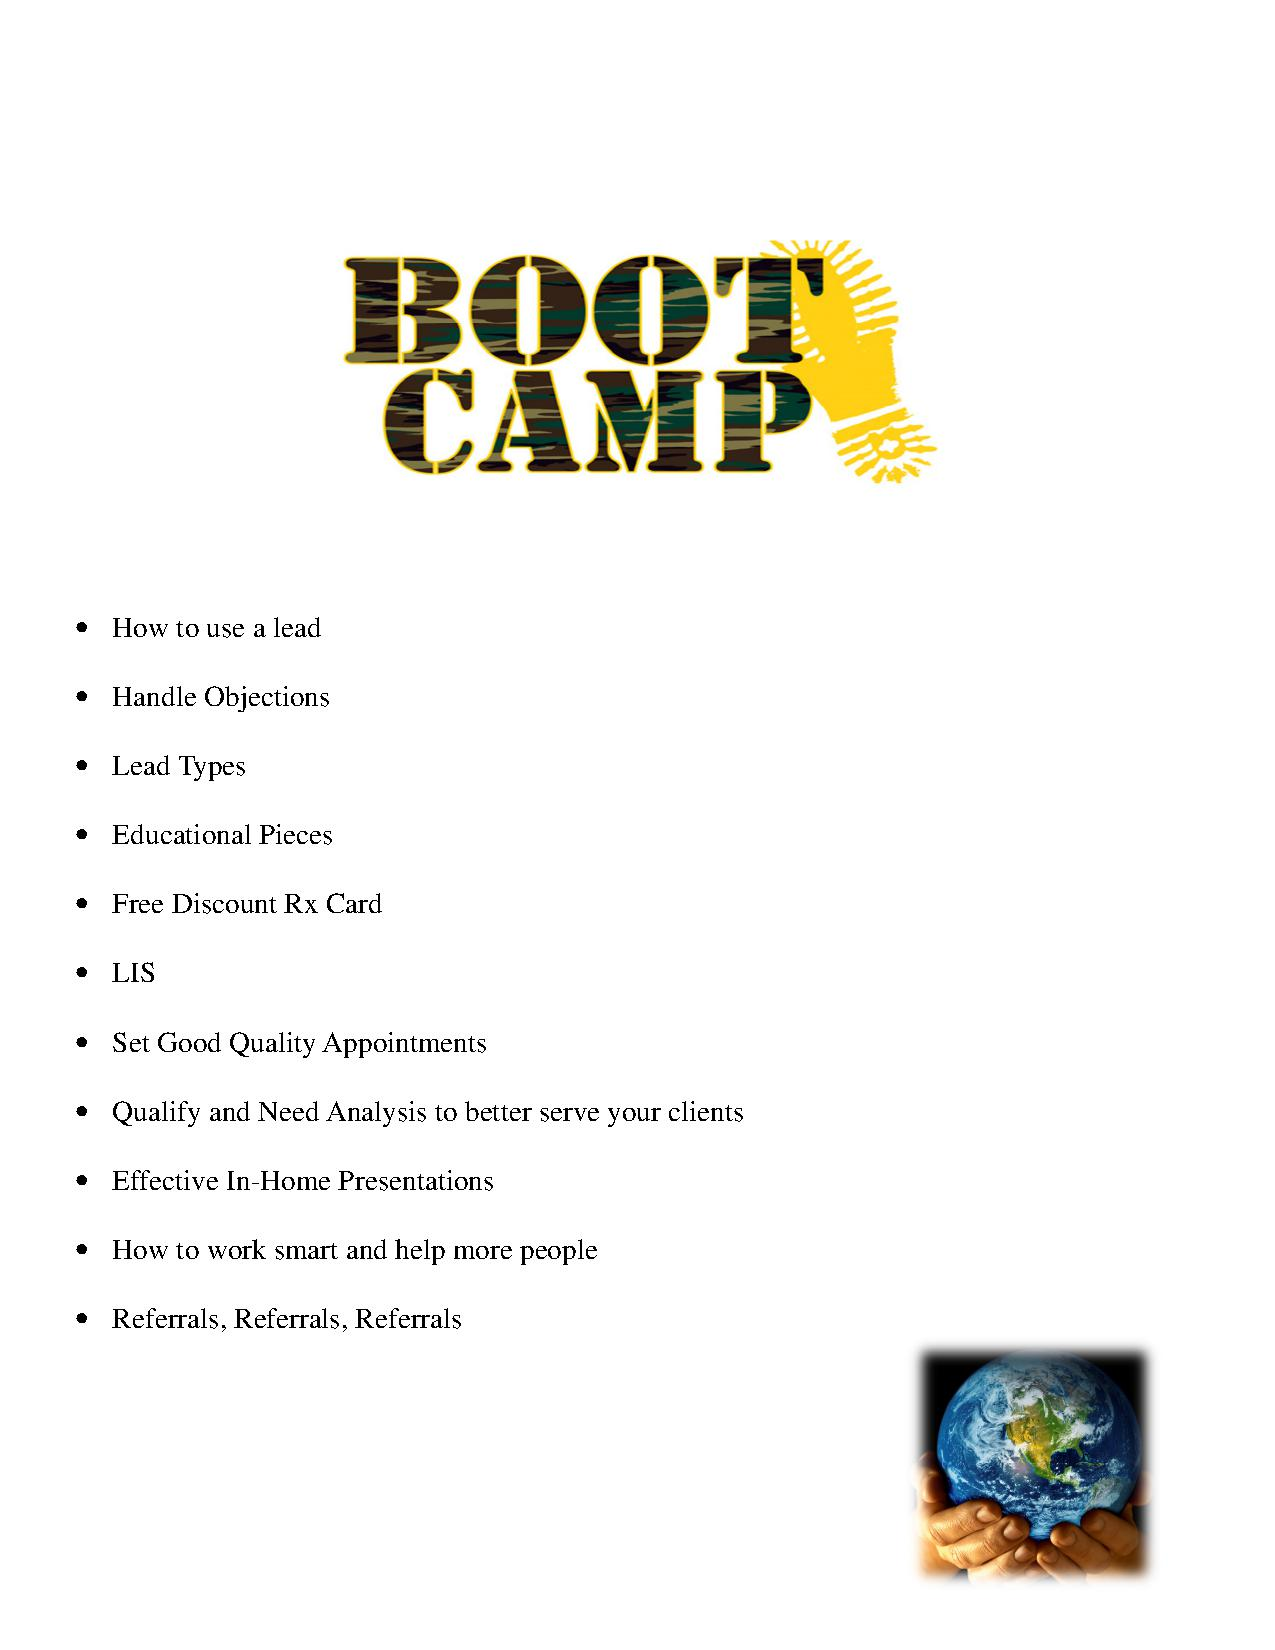 Boot Camp_NEW_1